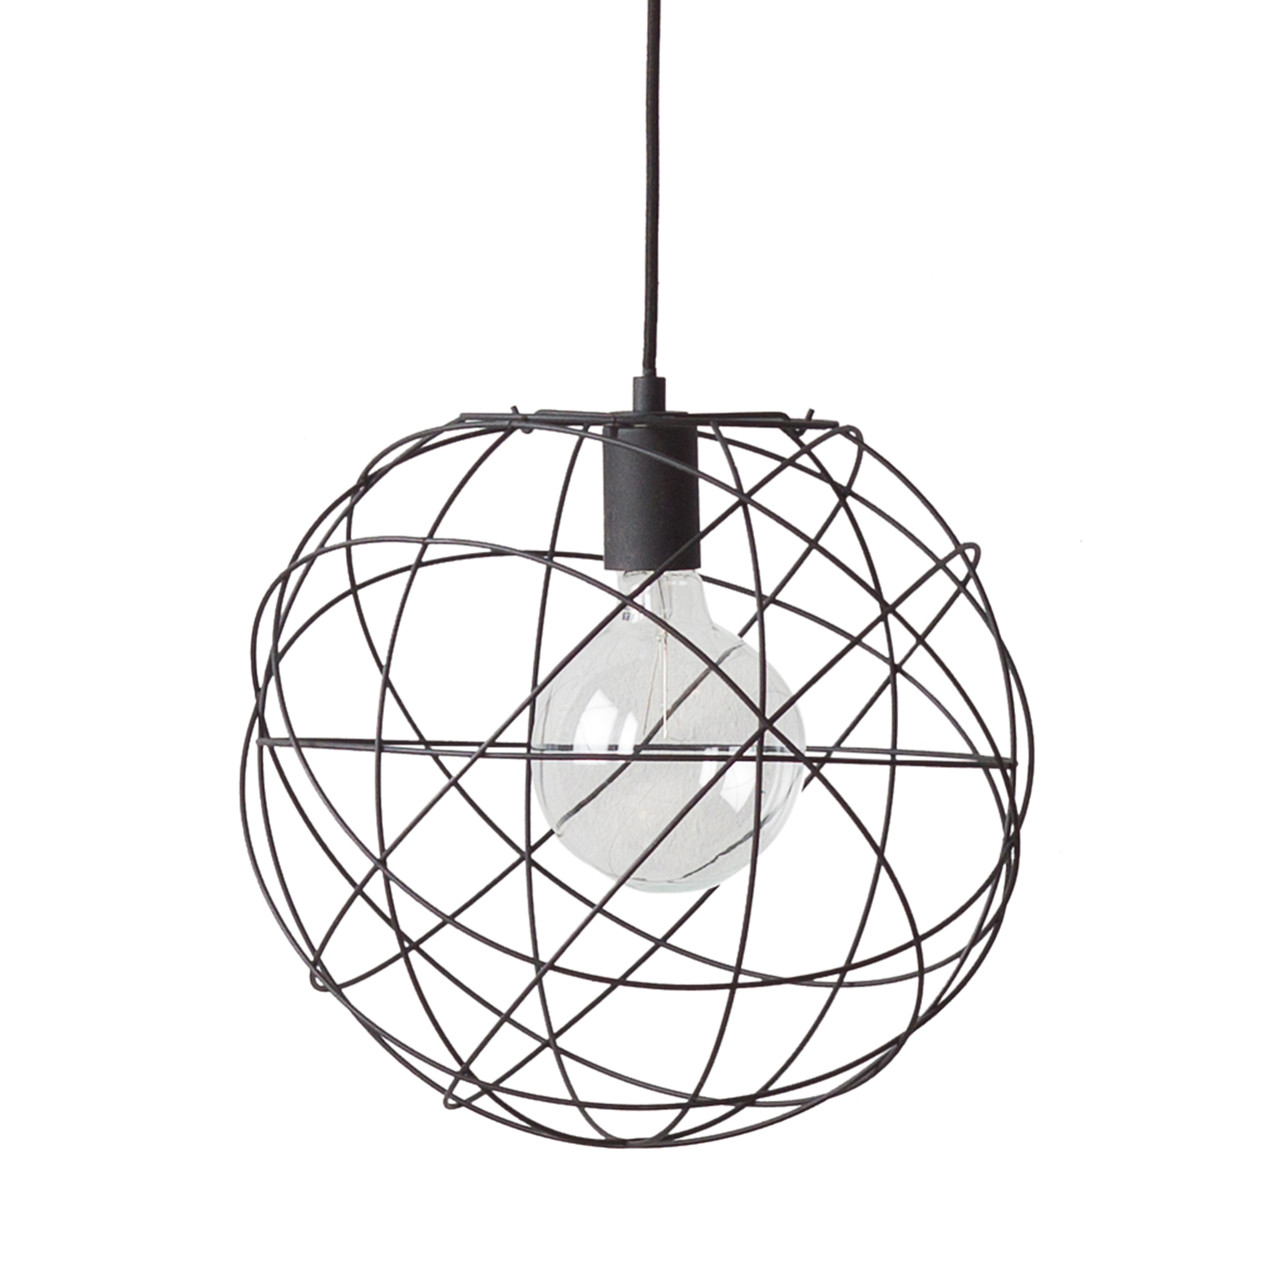 Cr ton maison global loftlampe for Creton maison